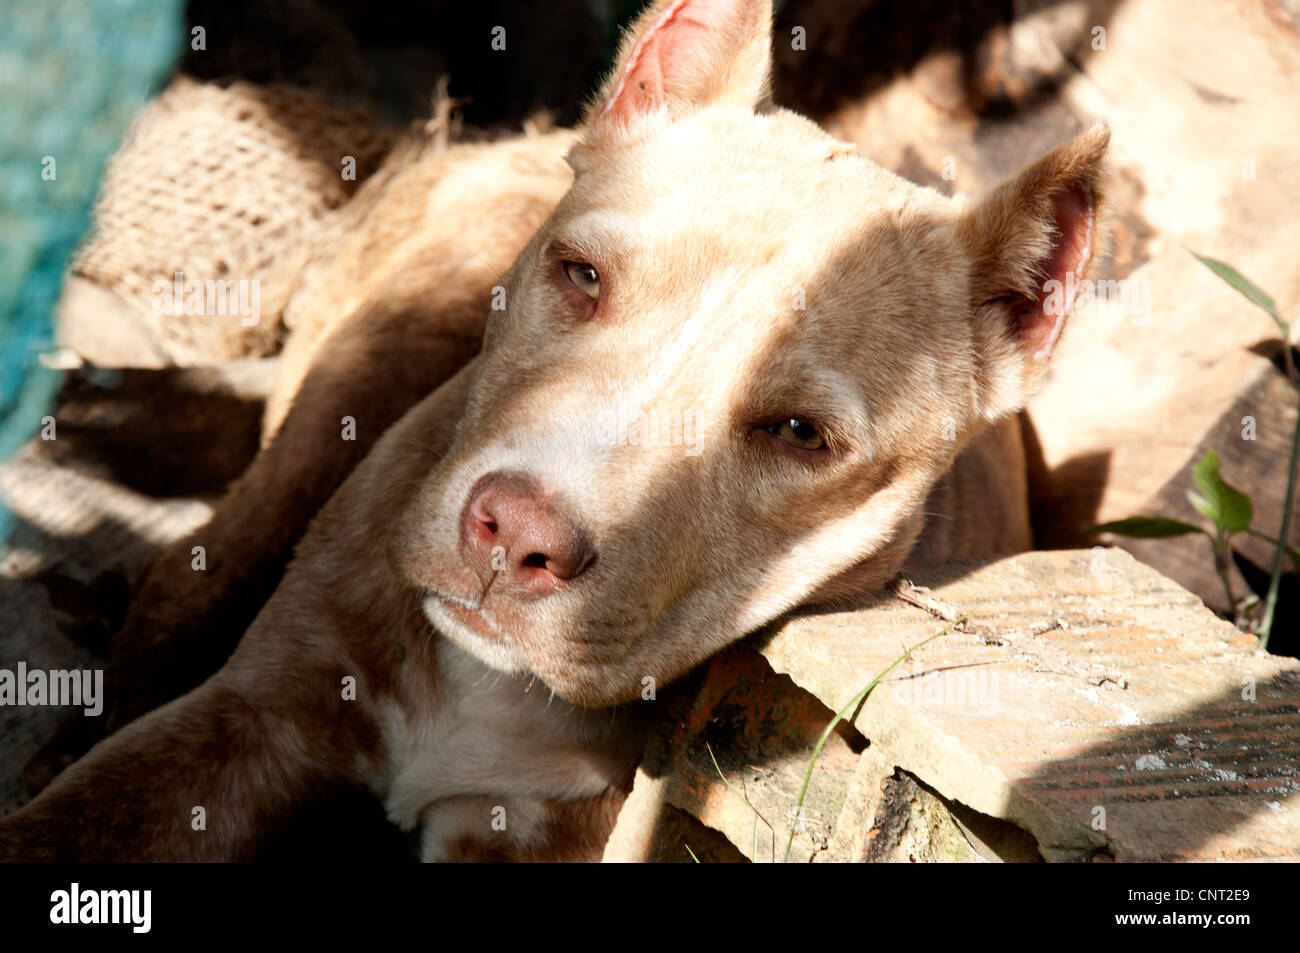 dog, pitbull, friend of man, harmless, brown, animal, nature, domestic, - Stock Image